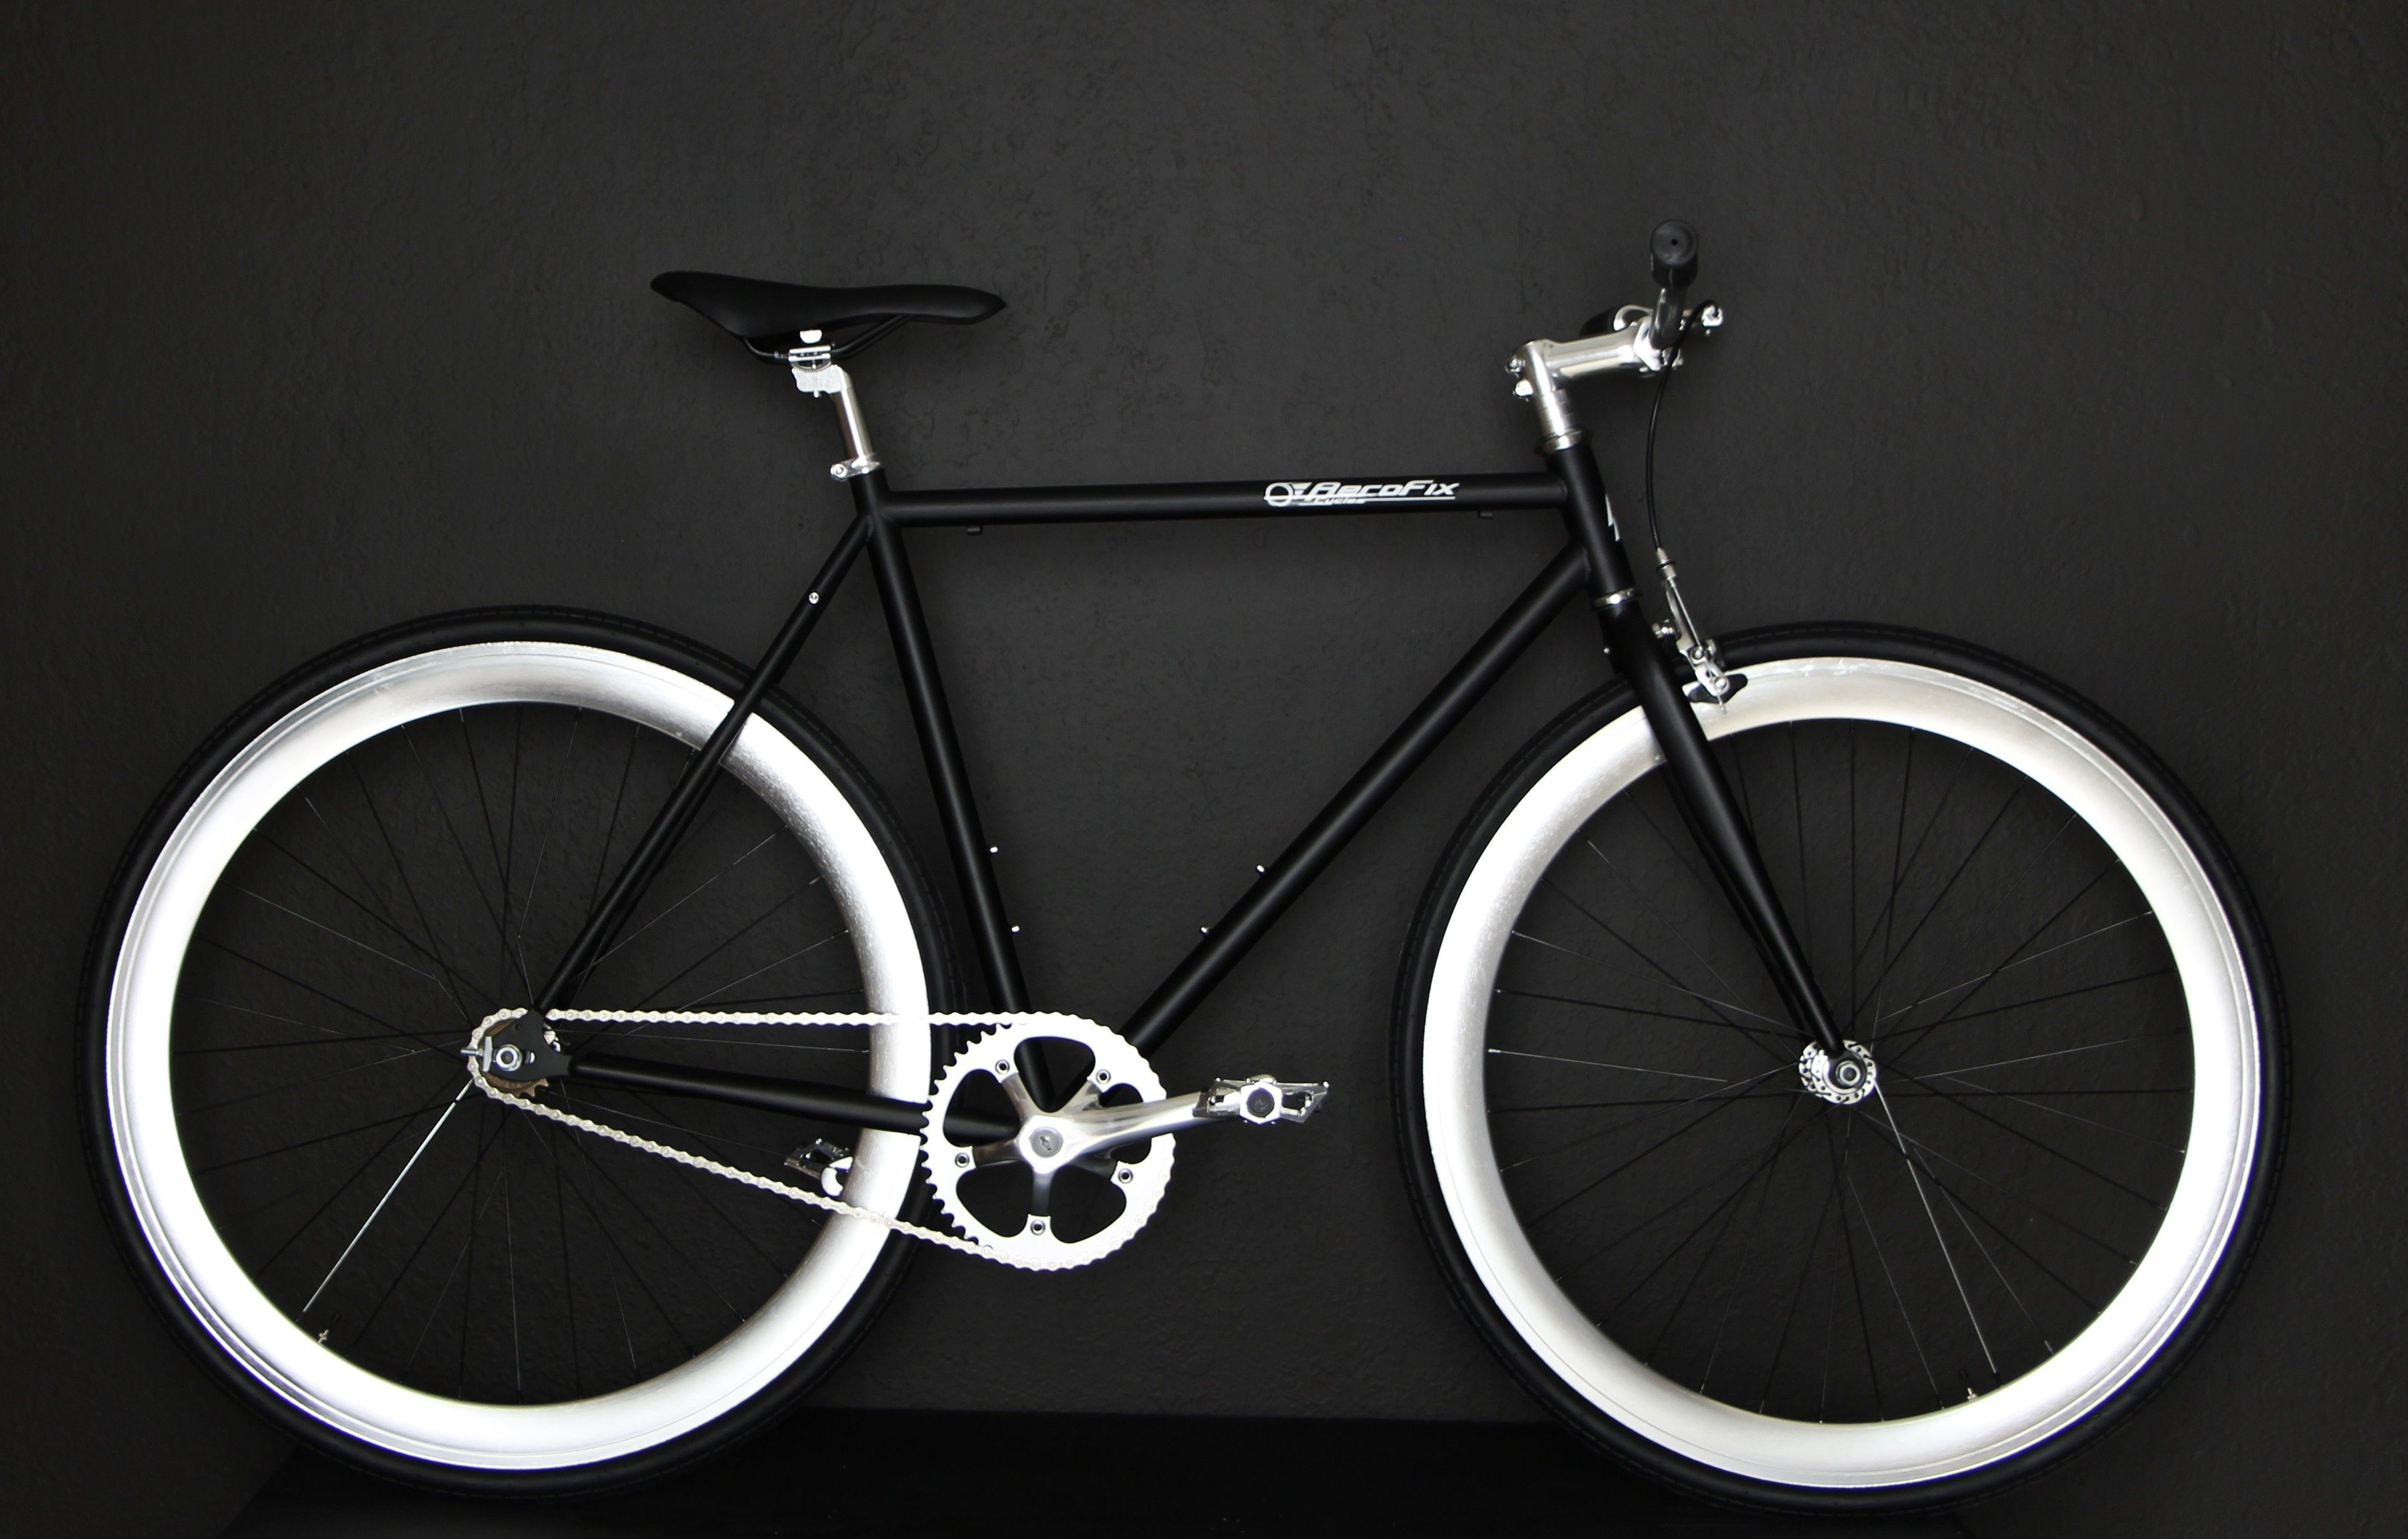 Black anodize silver rim fixie single speed fixed gear bicycle bike